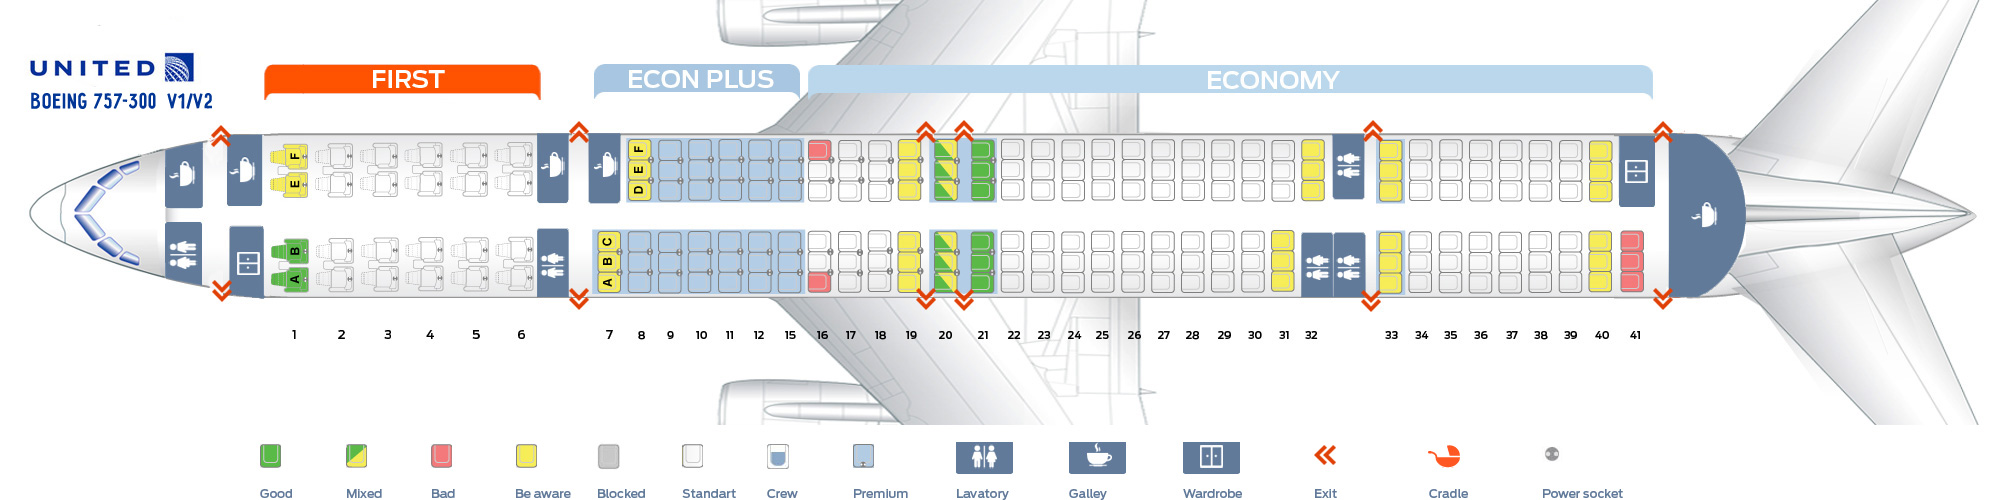 Seat_map_United_Airlines_Boeing_757_300_v1_v2